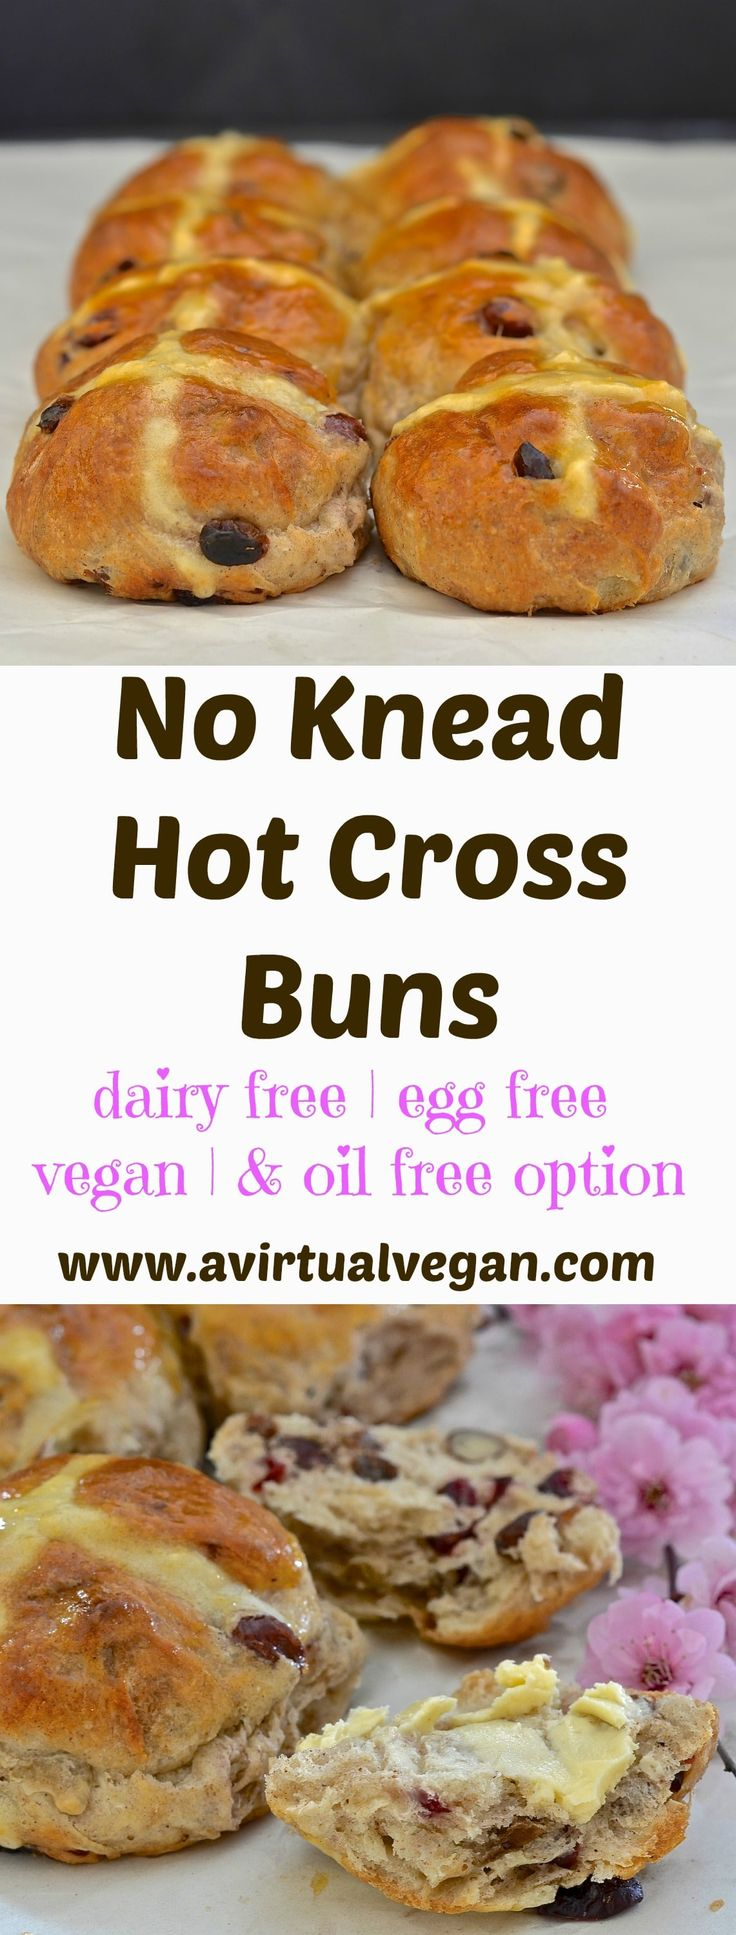 No-knead Hot Cross Buns.  Used water not milk. 1 tsp yeast. +++1/2 Not quite as good as regular ones.